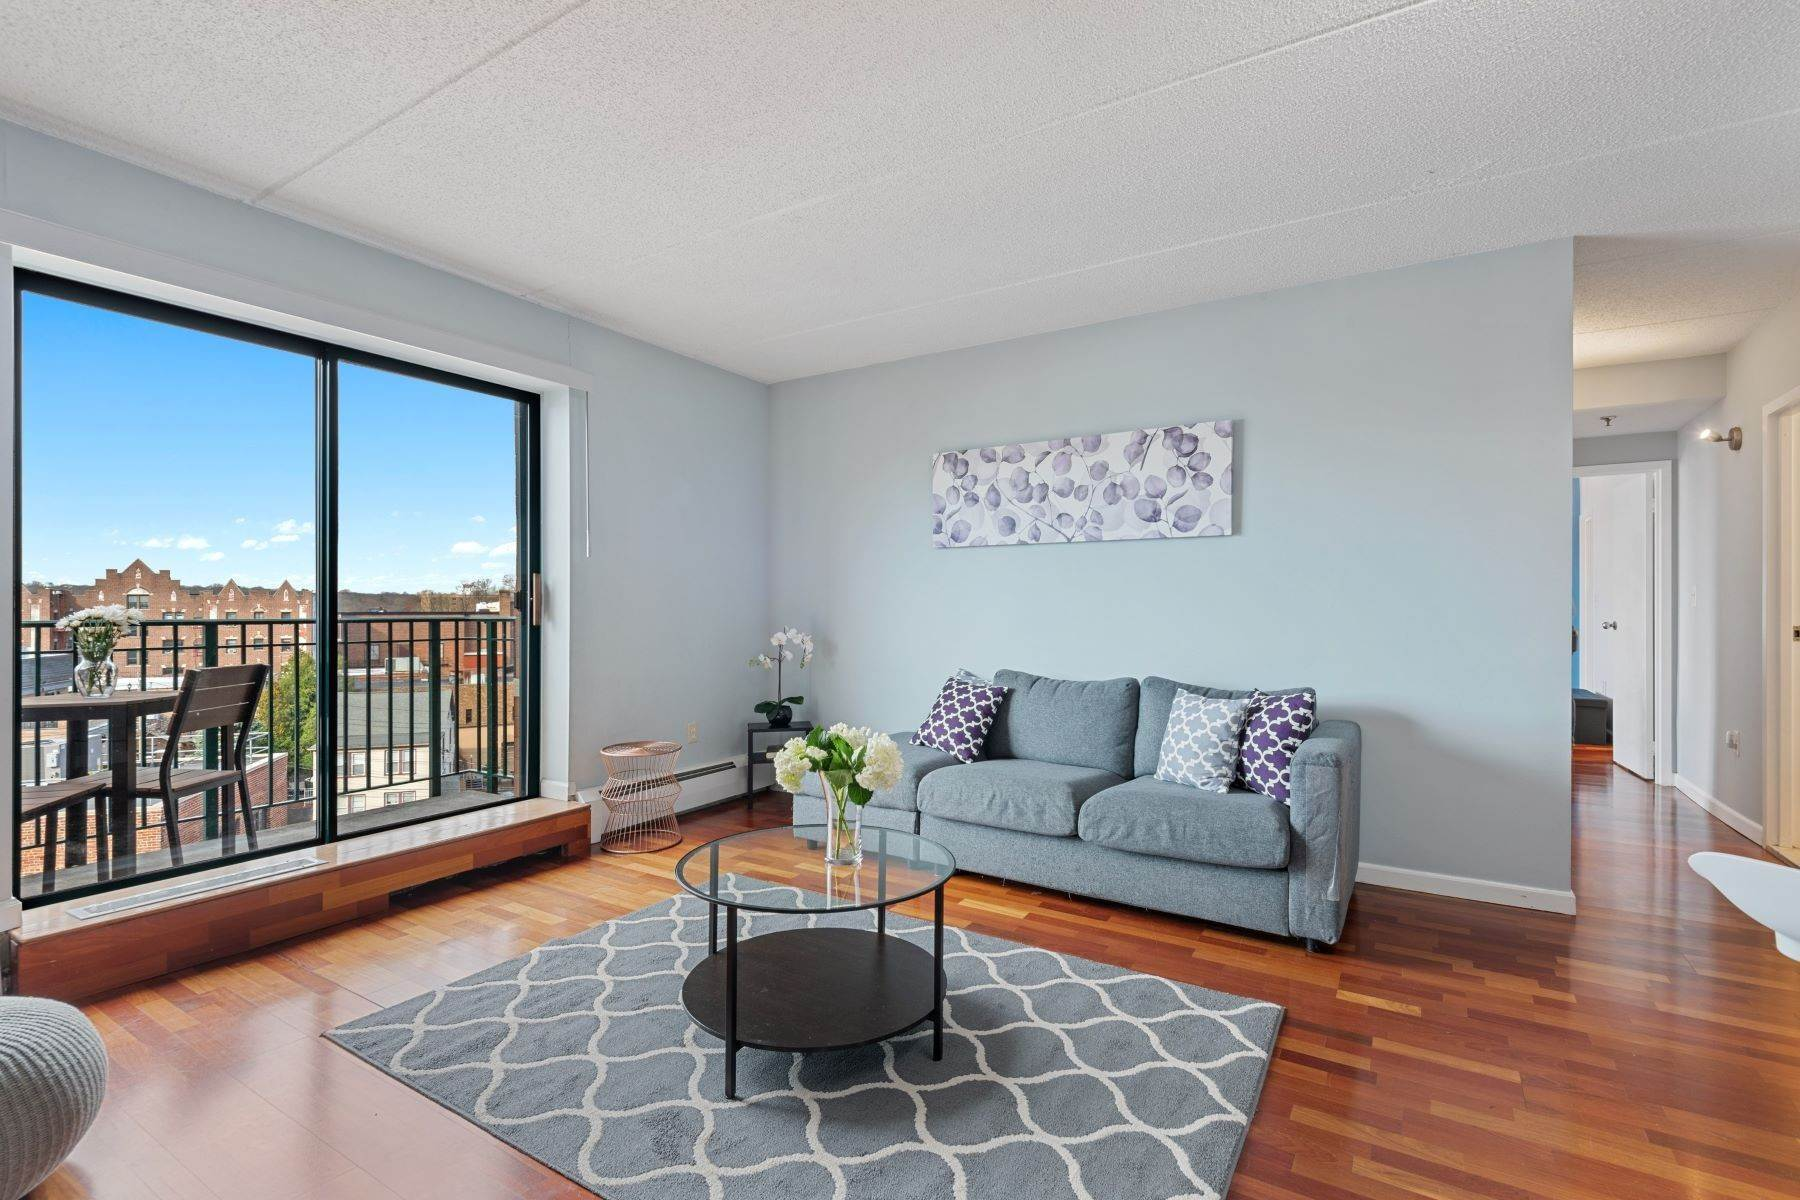 Property for Sale at Gorgeous Downtown Mamaroneck Condo 123 Mamaroneck Avenue, 602 Mamaroneck, New York 10543 United States